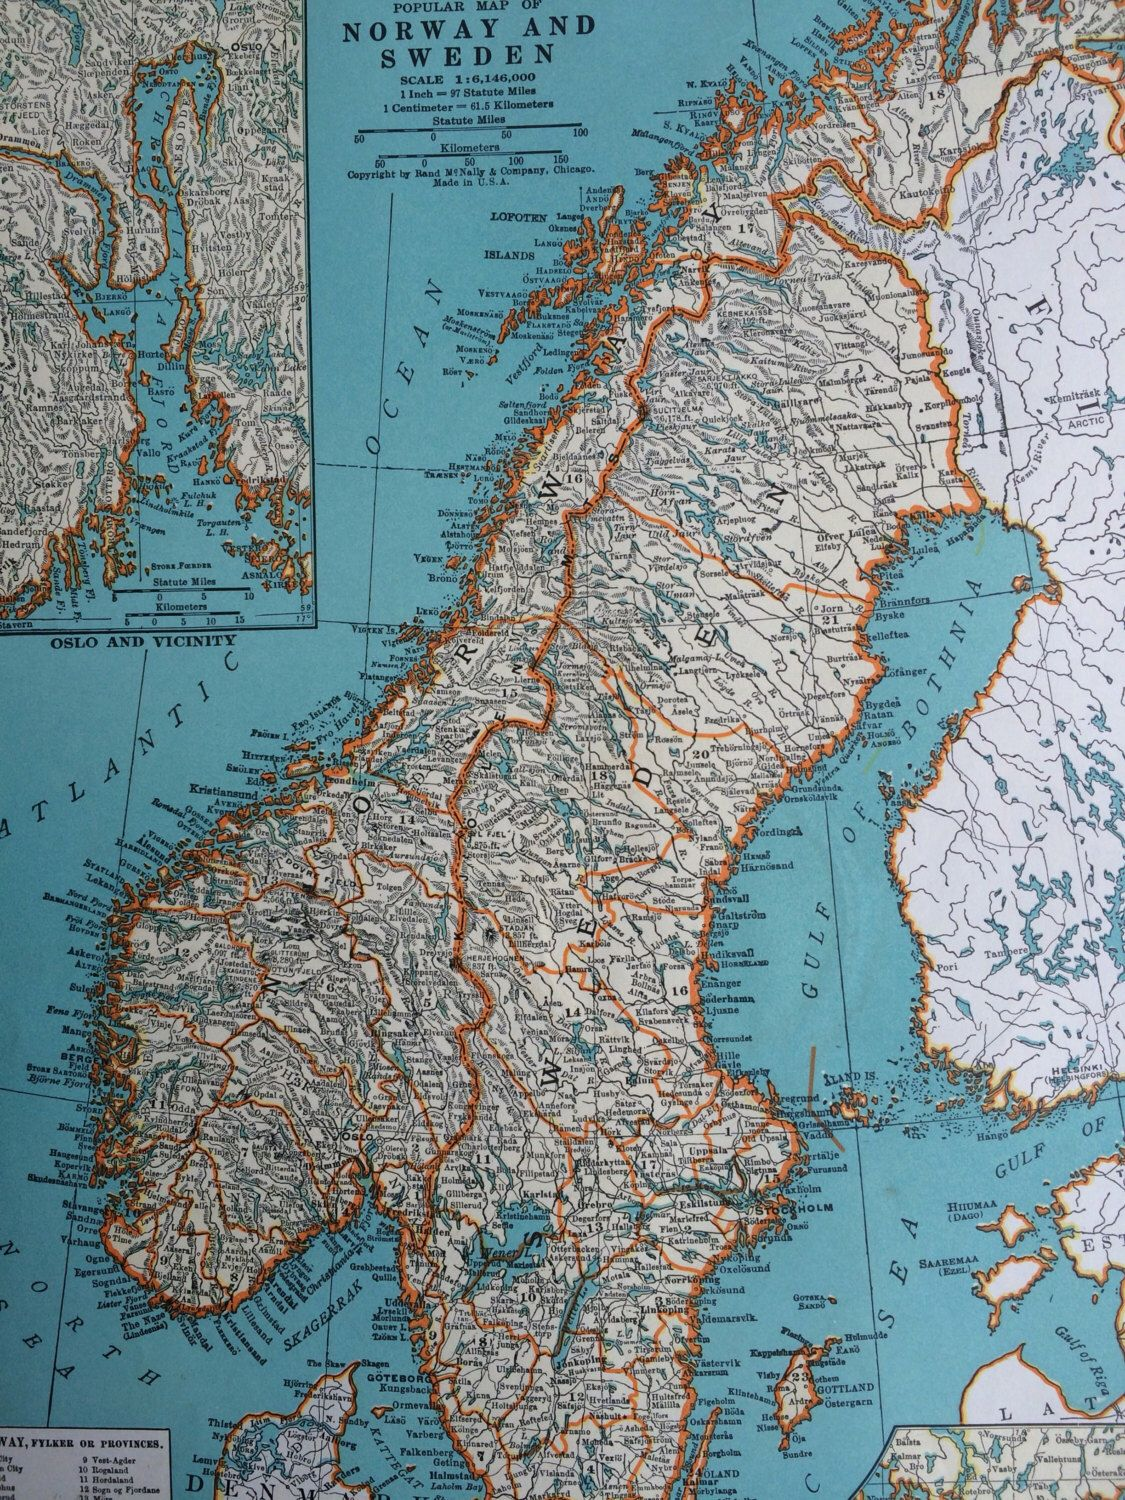 1937 norway sweden original vintage map 11 x 14 inches rand mcnally